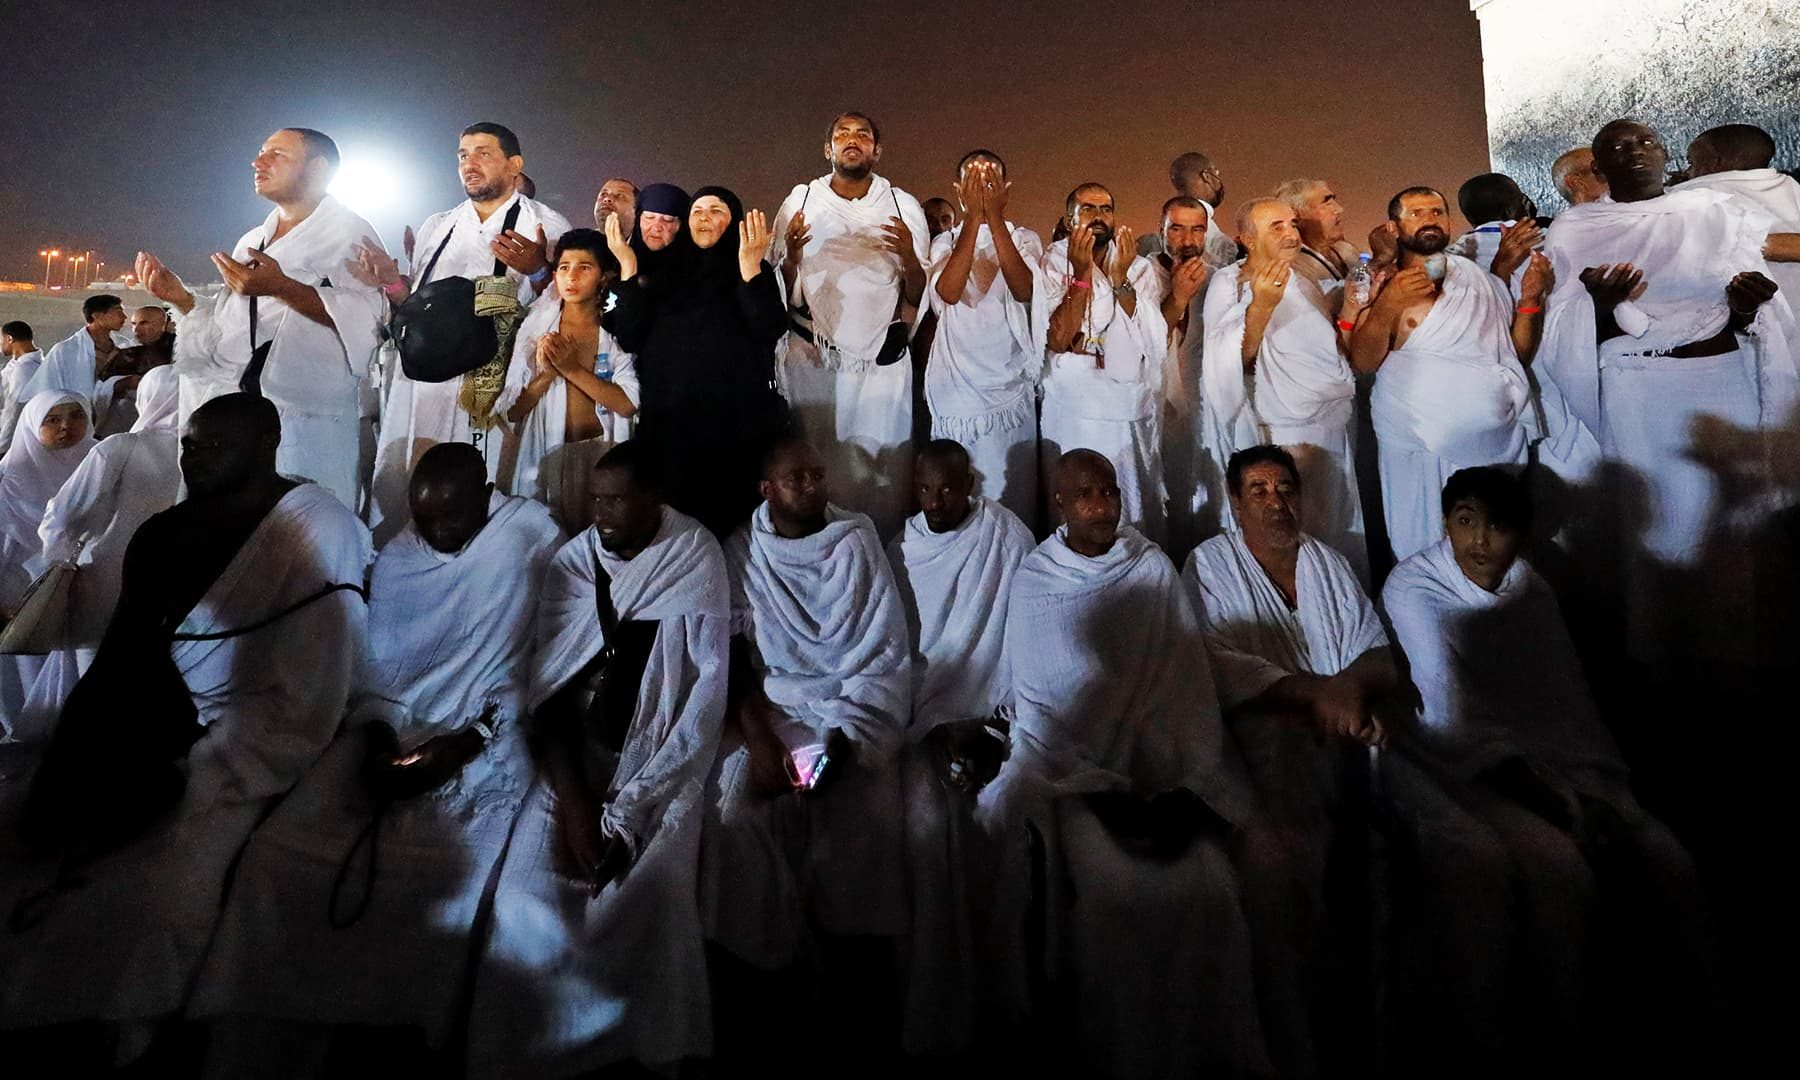 Pilgrims gather on Mount Mercy ahead of departure to Muzdalifa. — Reuters